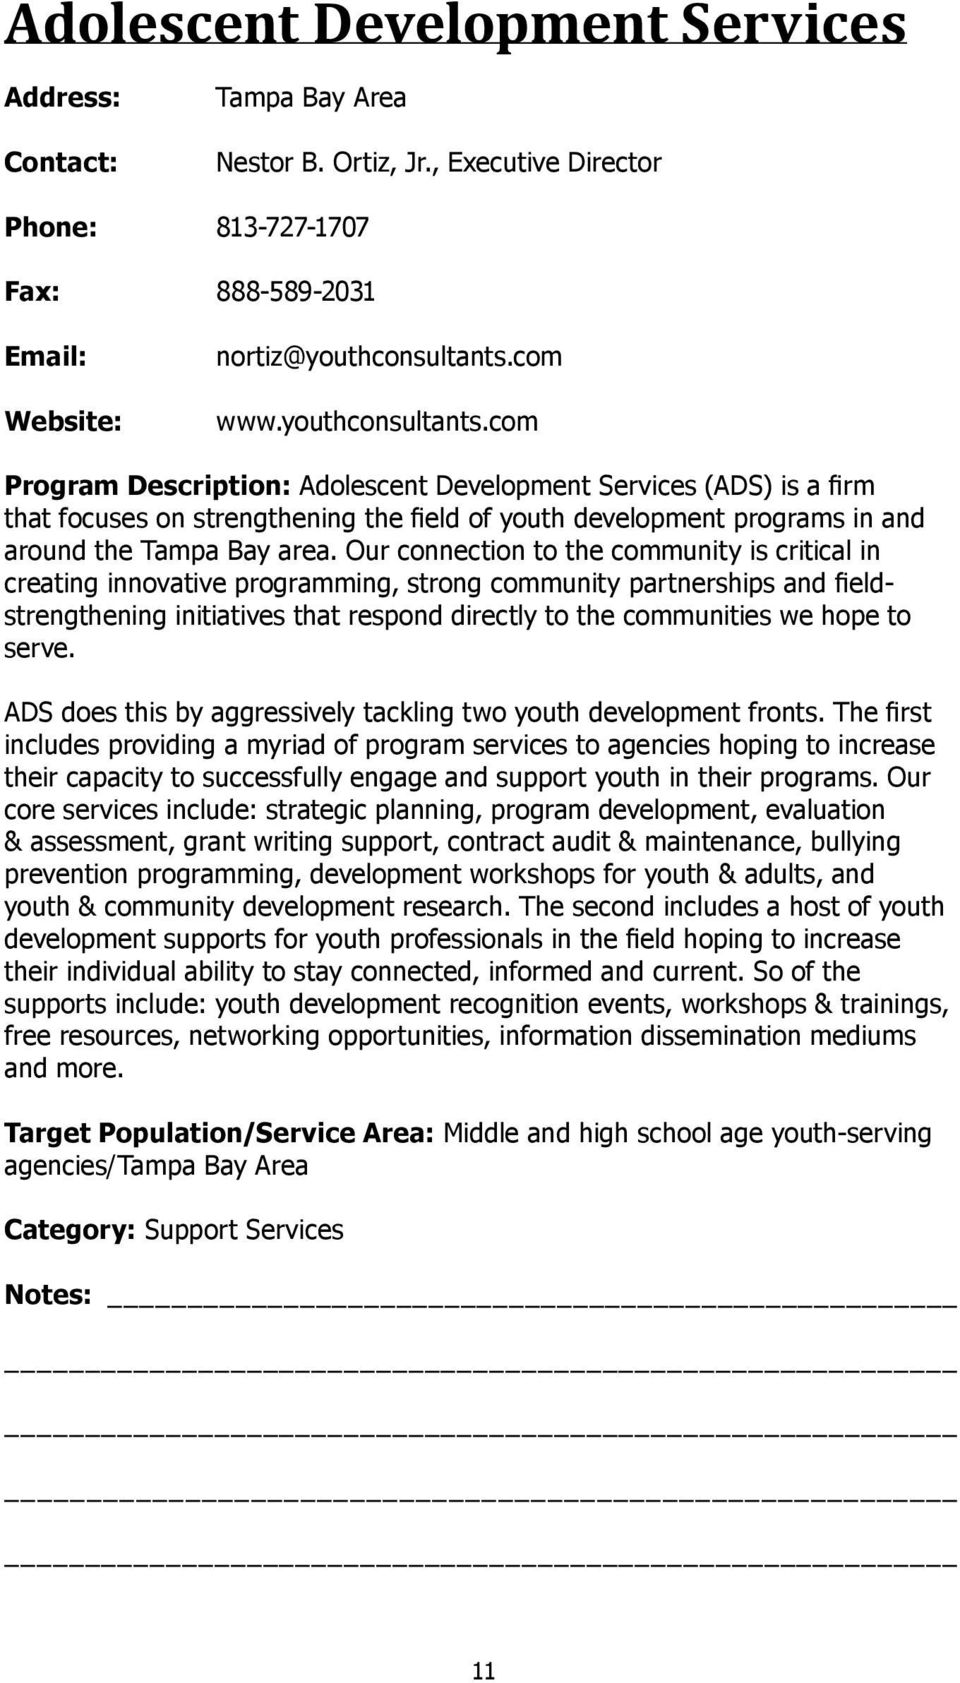 com Program Description: Adolescent Development Services (ADS) is a firm that focuses on strengthening the field of youth development programs in and around the Tampa Bay area.